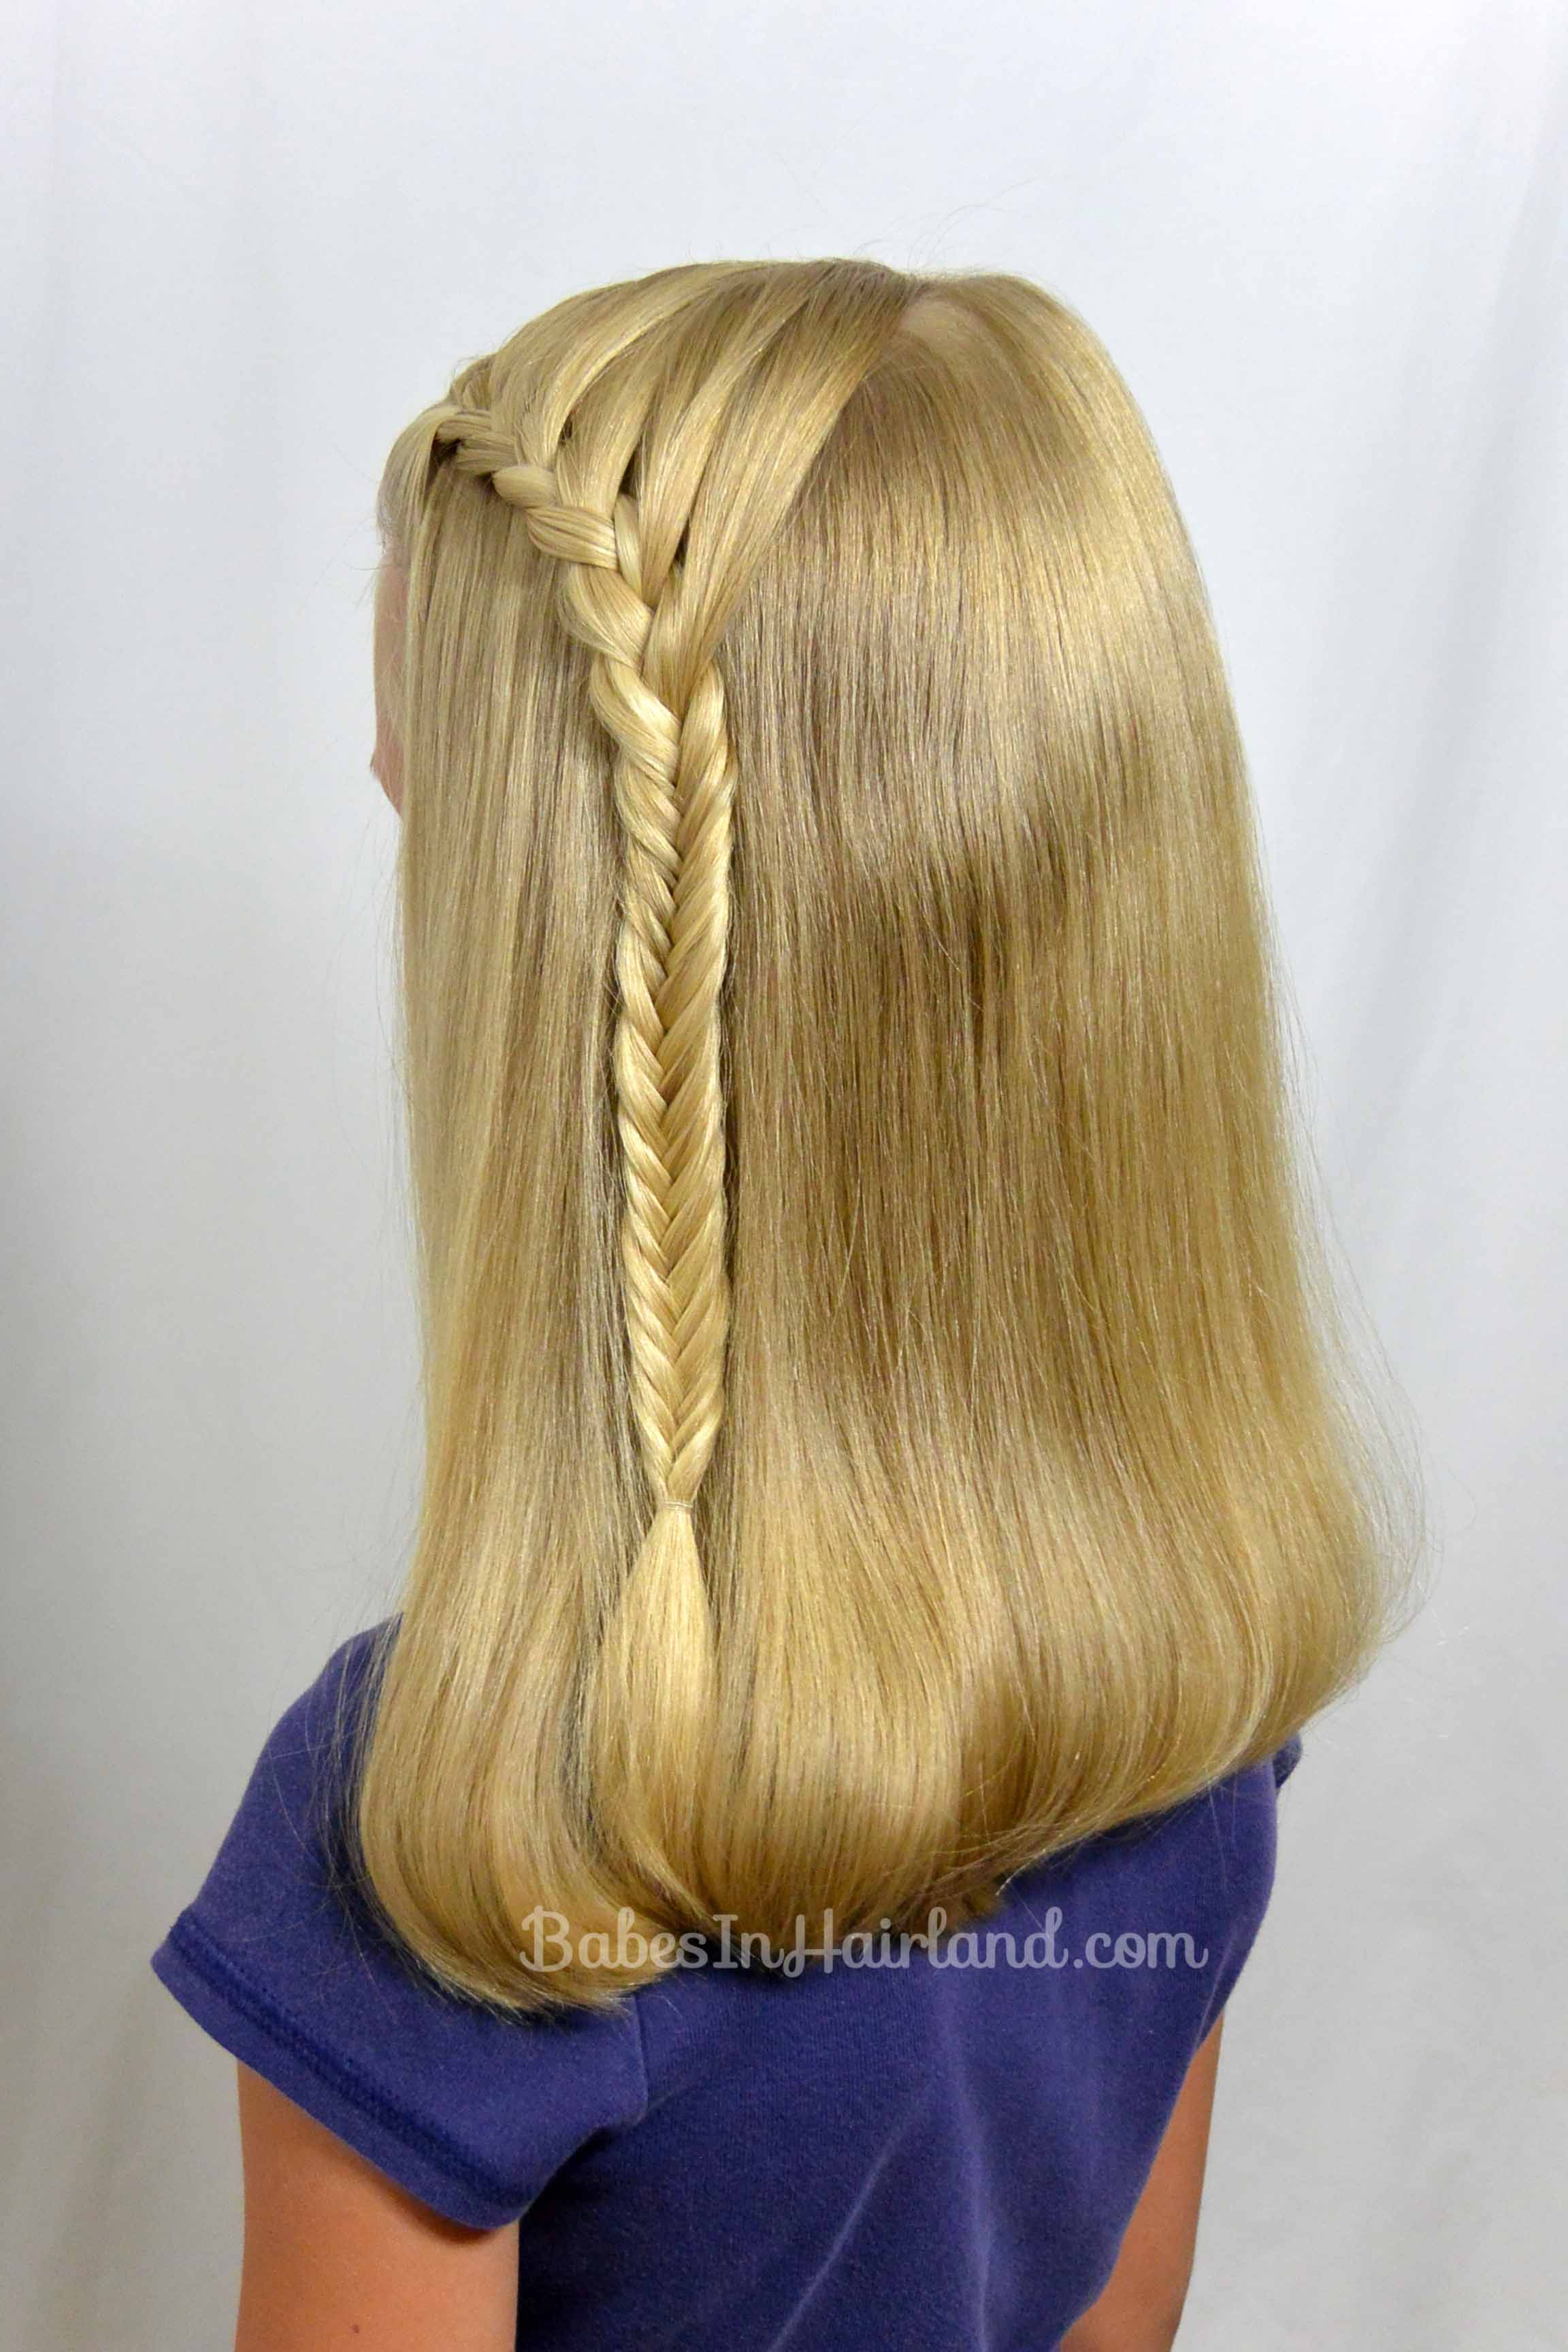 Lace Braid Into A Fishbone Braid Babes In Hairland